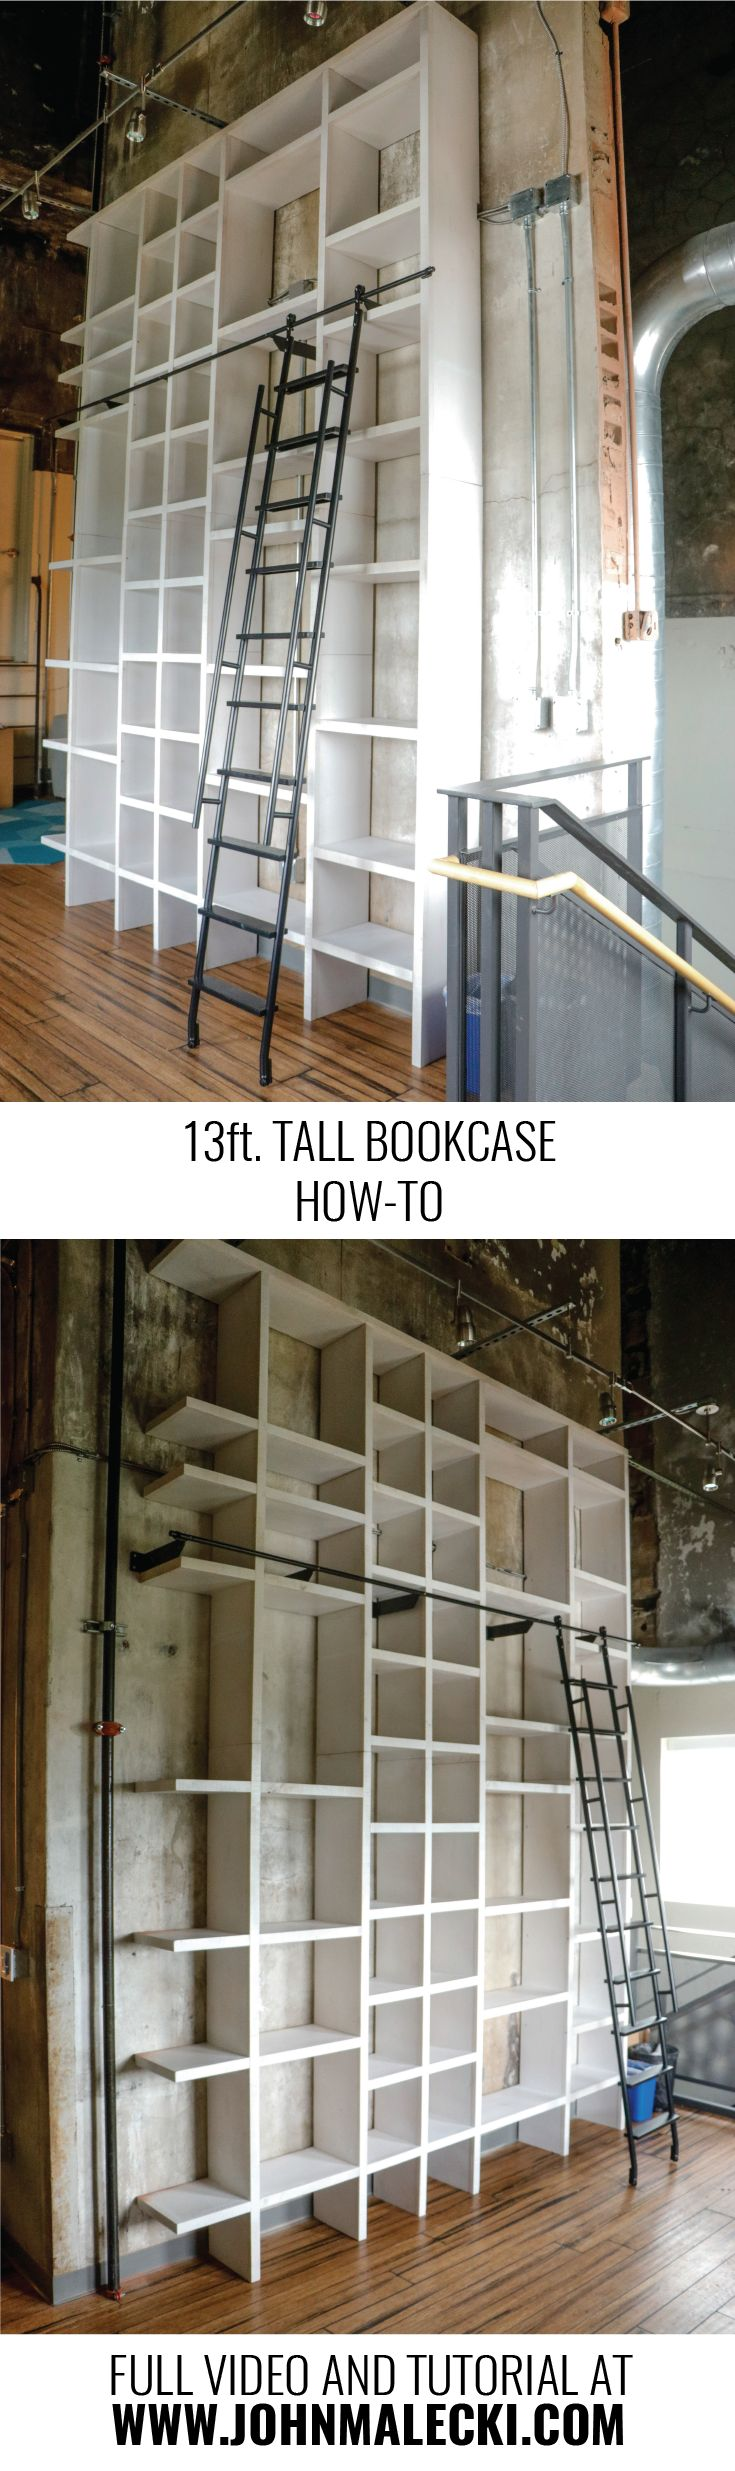 A 13ft. tall bookshelf is an enormous addition to any space. With huge ceilings and a gorgeous repurposed space, this rolling ladder system turned out stunning.